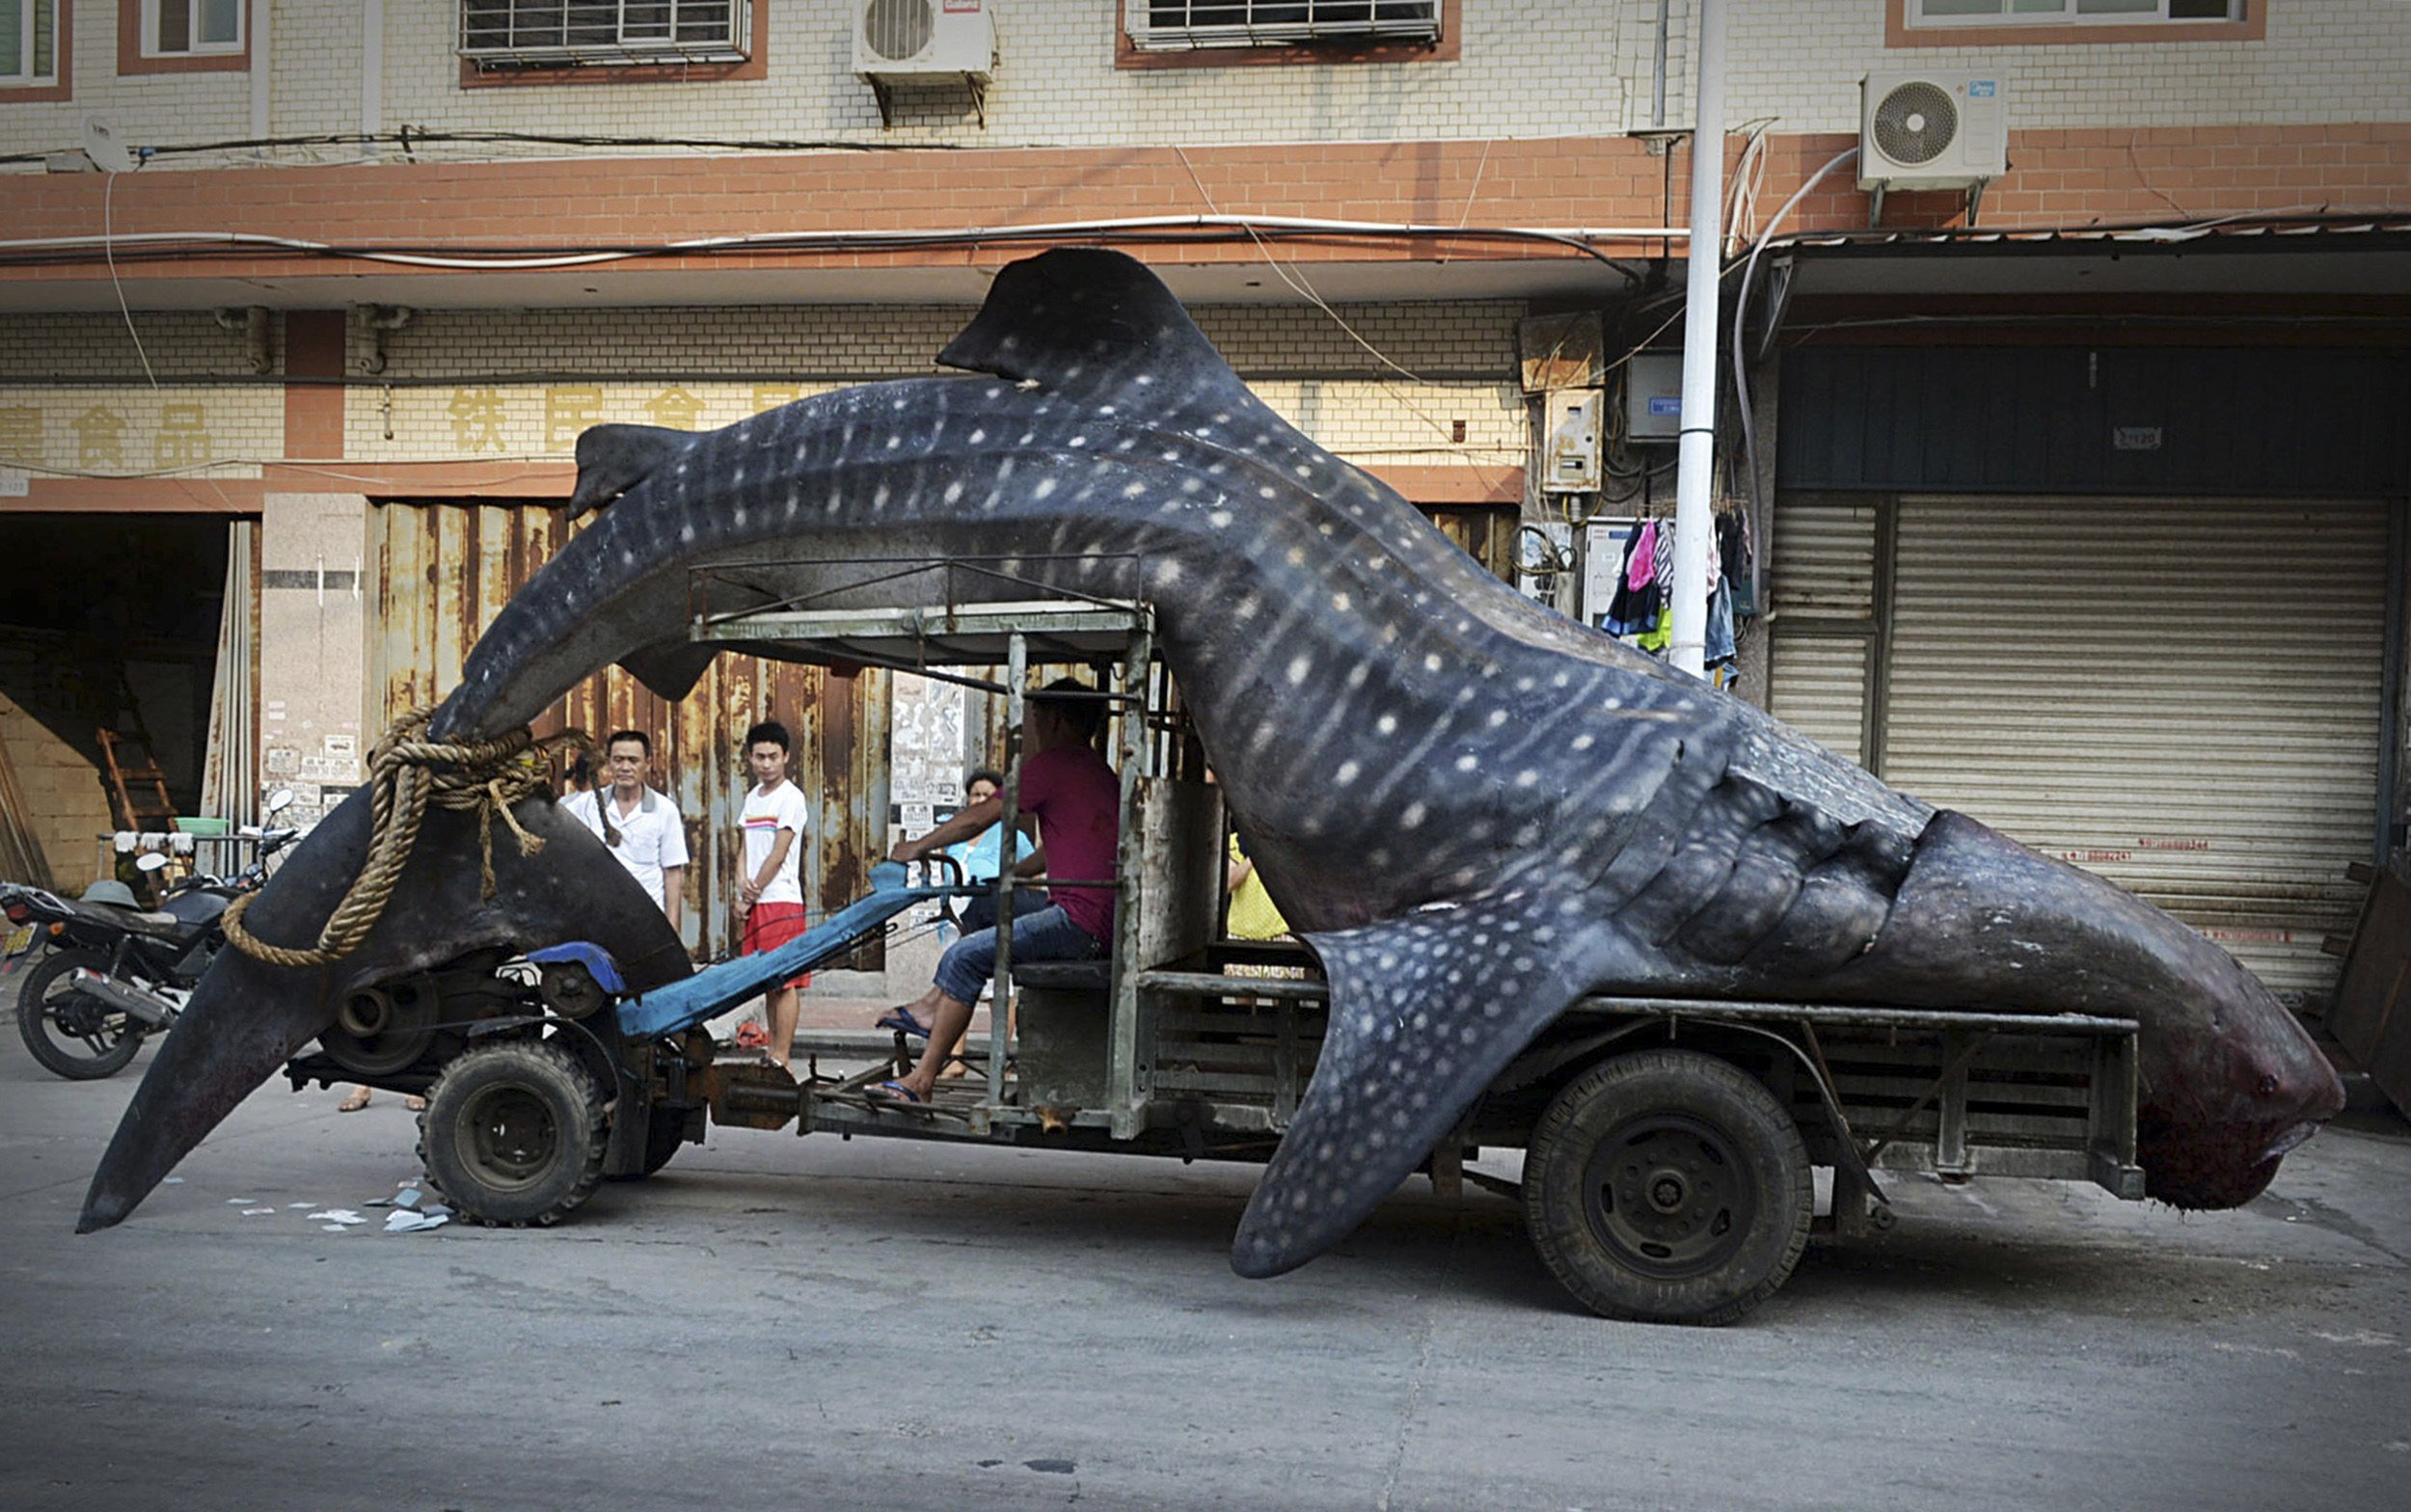 Aug. 1, 2014. A fisherman transports a dead whale shark after it was caught in fishermen's net, in Yangzhi county, Fujian province. According to local media, the whale shark is five-metre-long and weighs over 2 tons.